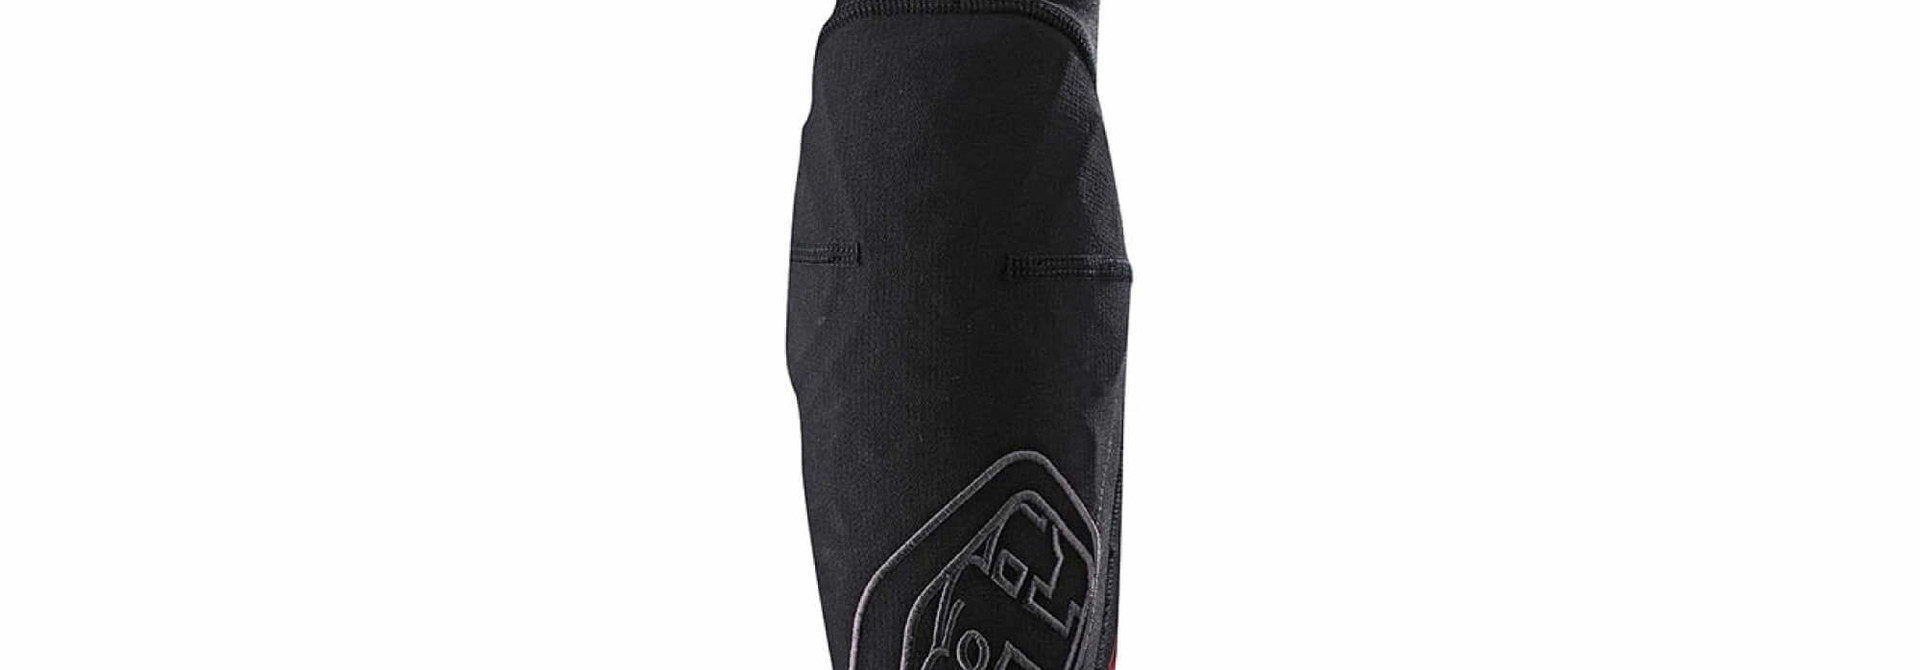 Stage Elbow Guard